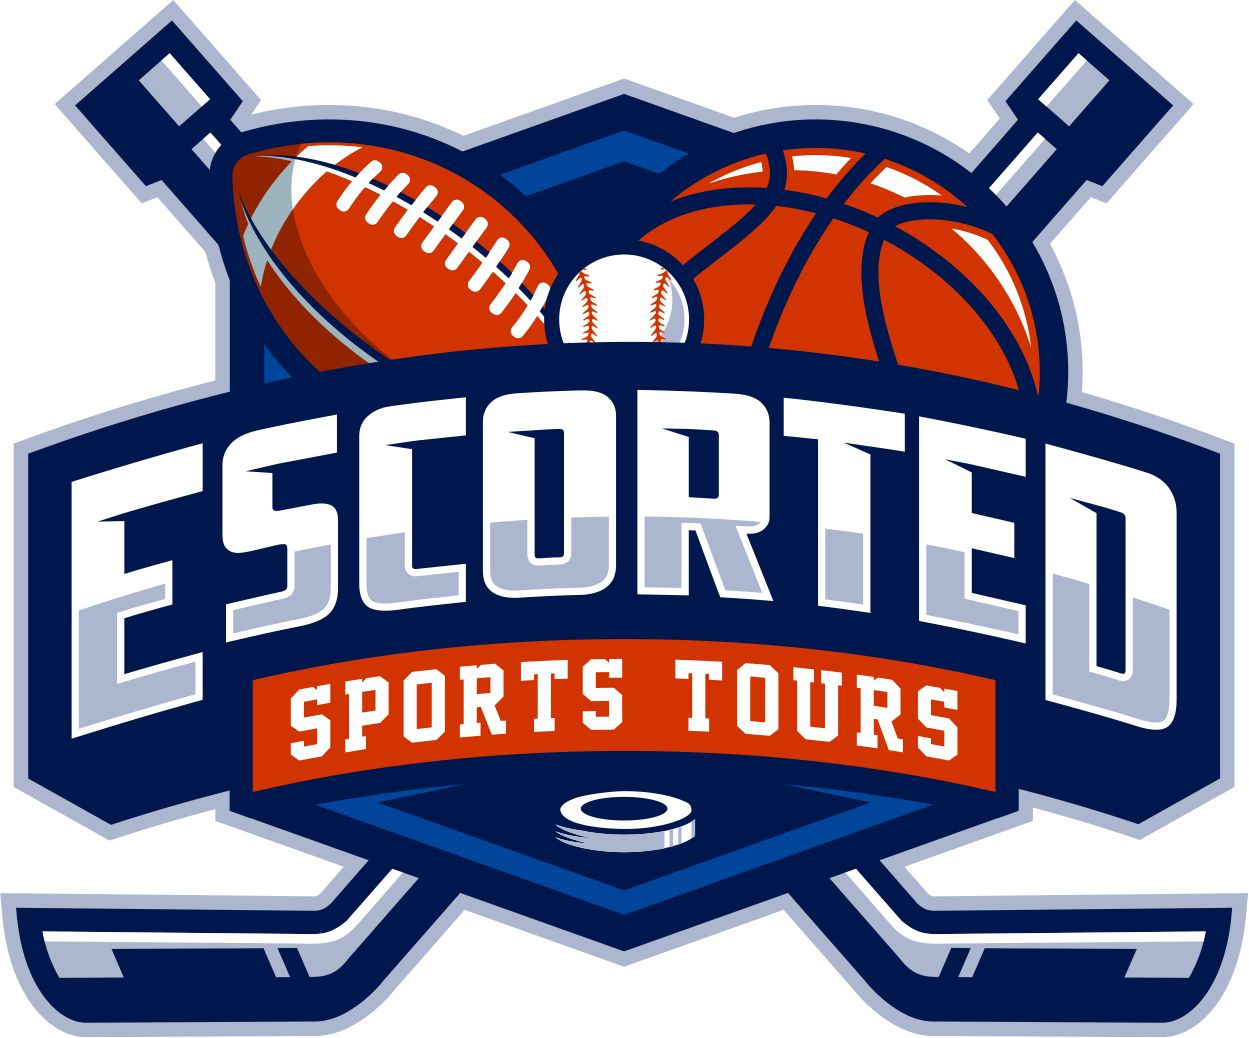 Escorted Sports Tours Logo